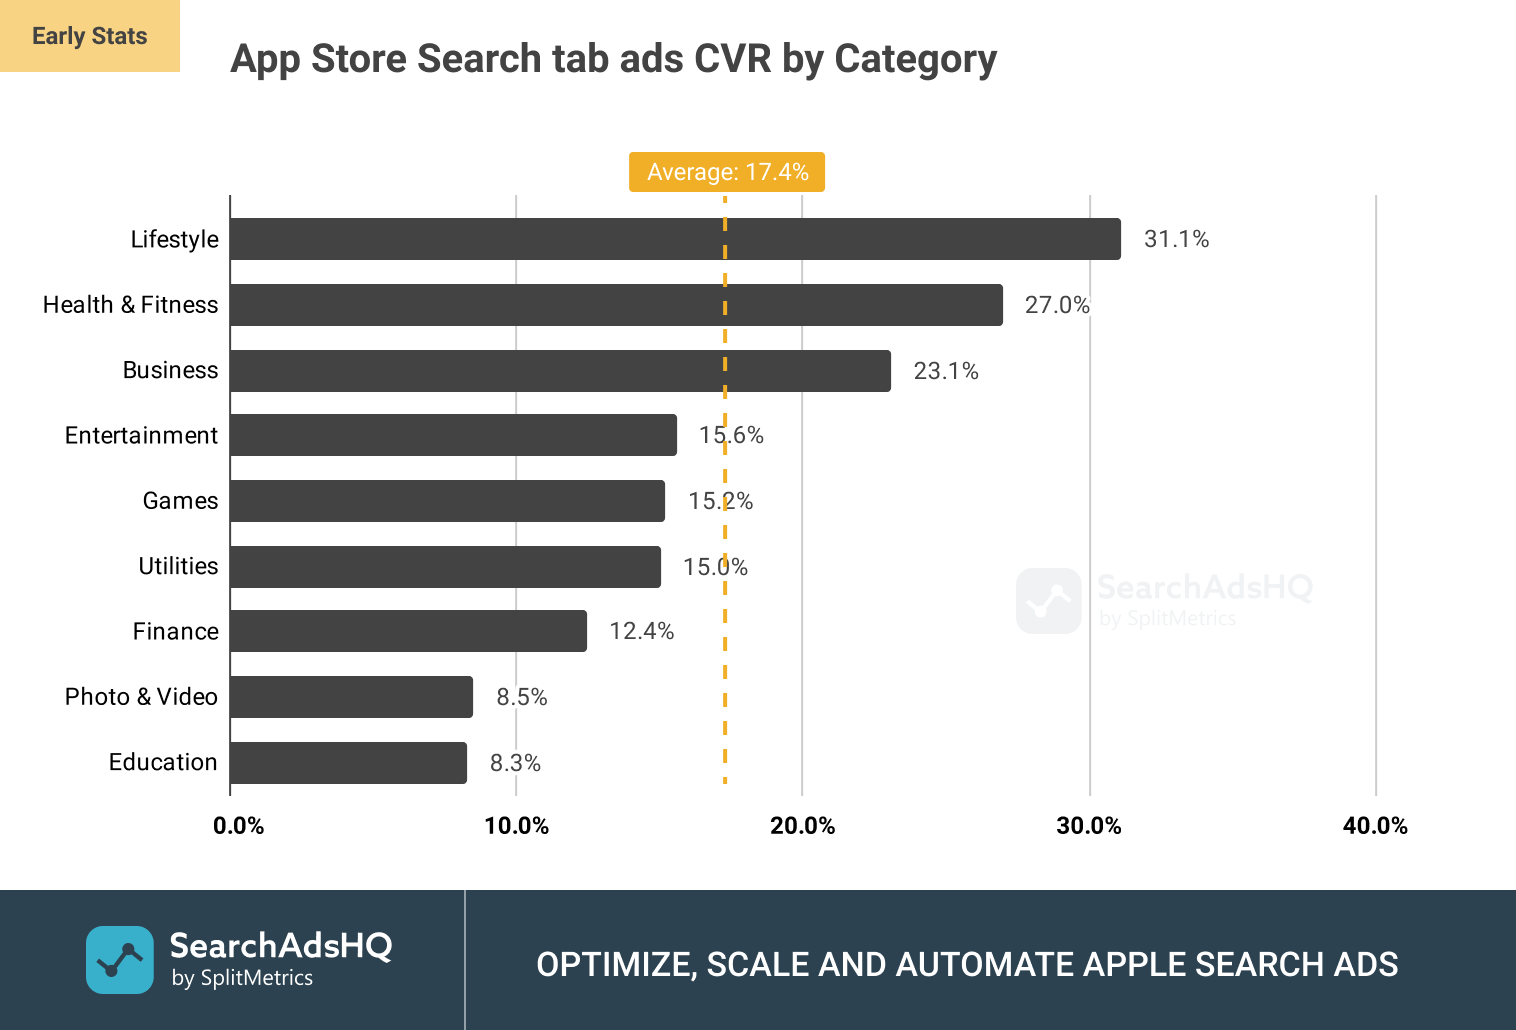 App Store Search tab ads: Average CR (Conversion Rate) by Category